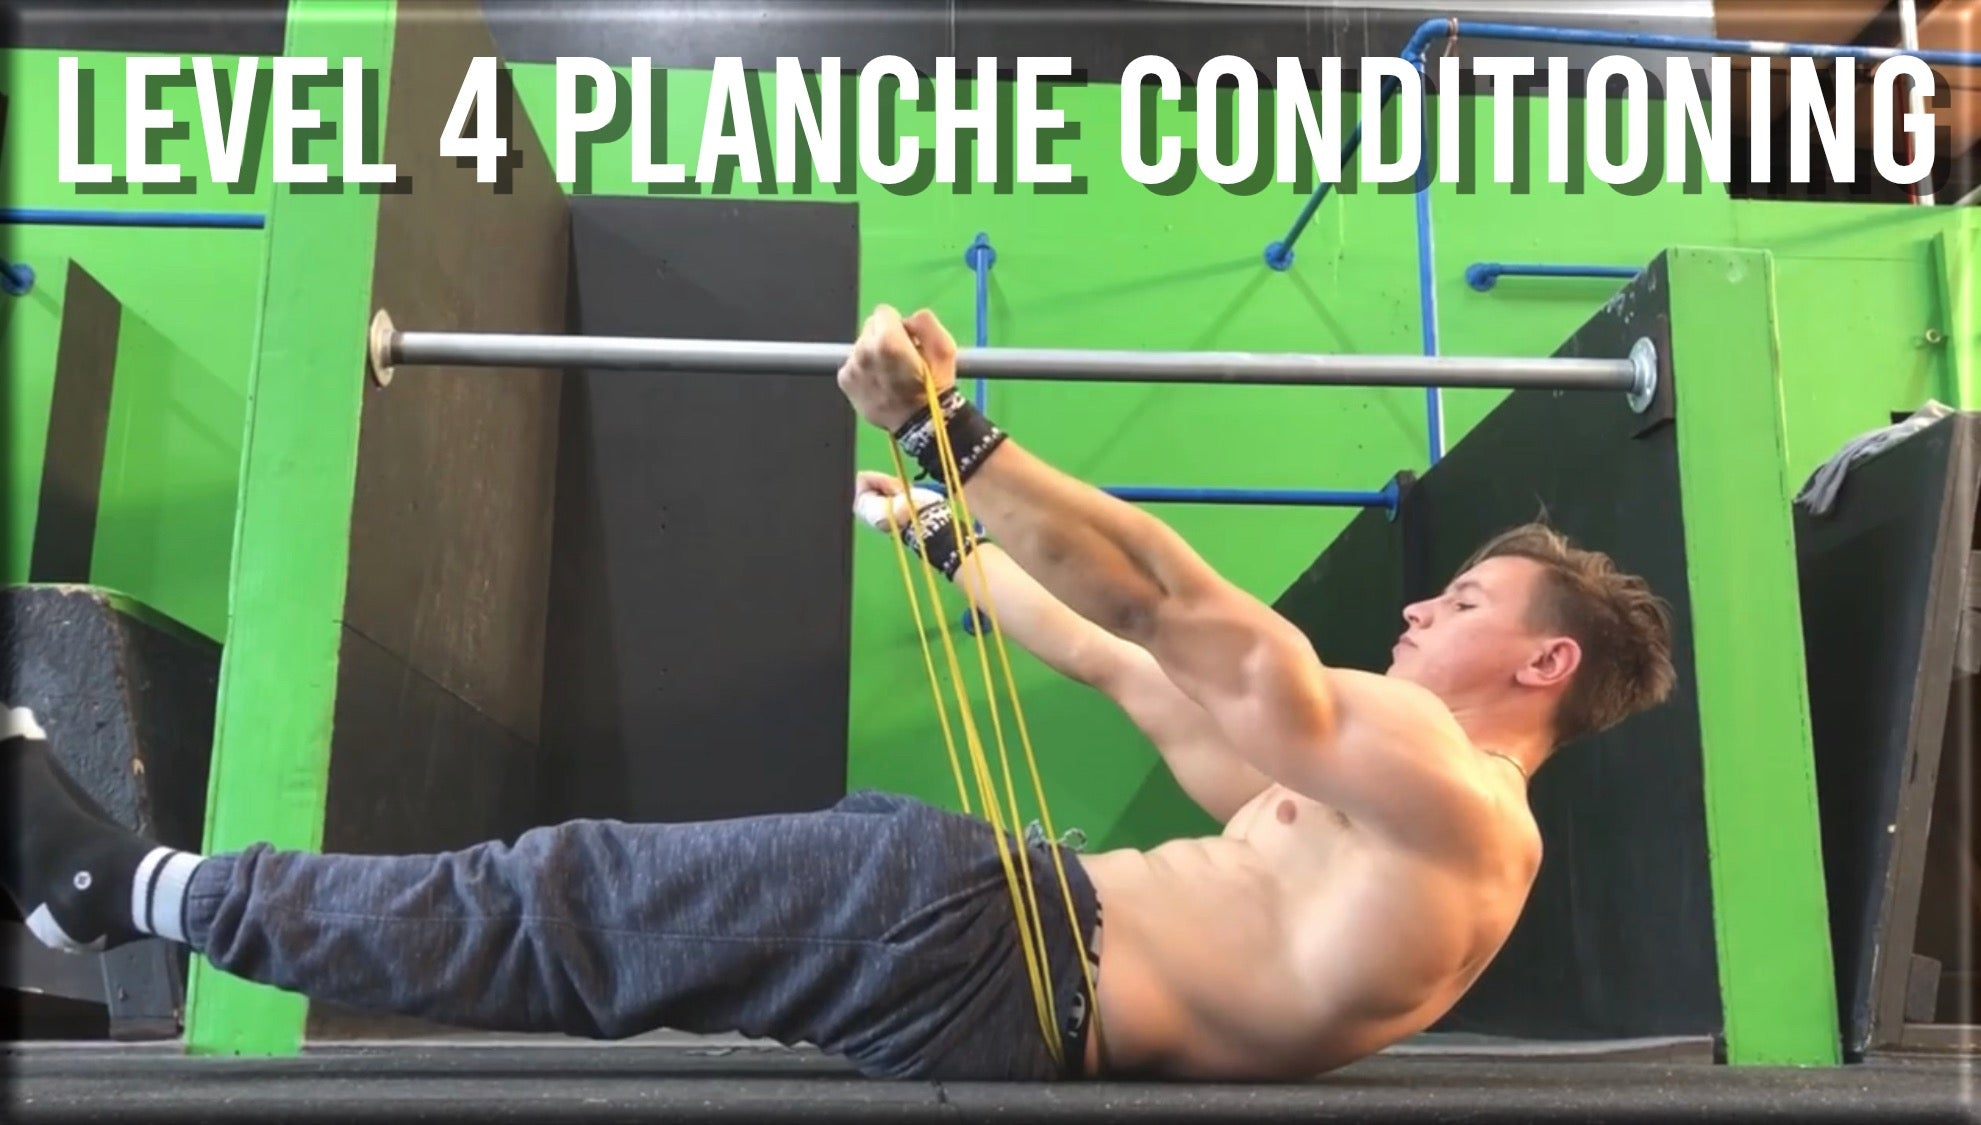 Level 4 Planche Conditioning